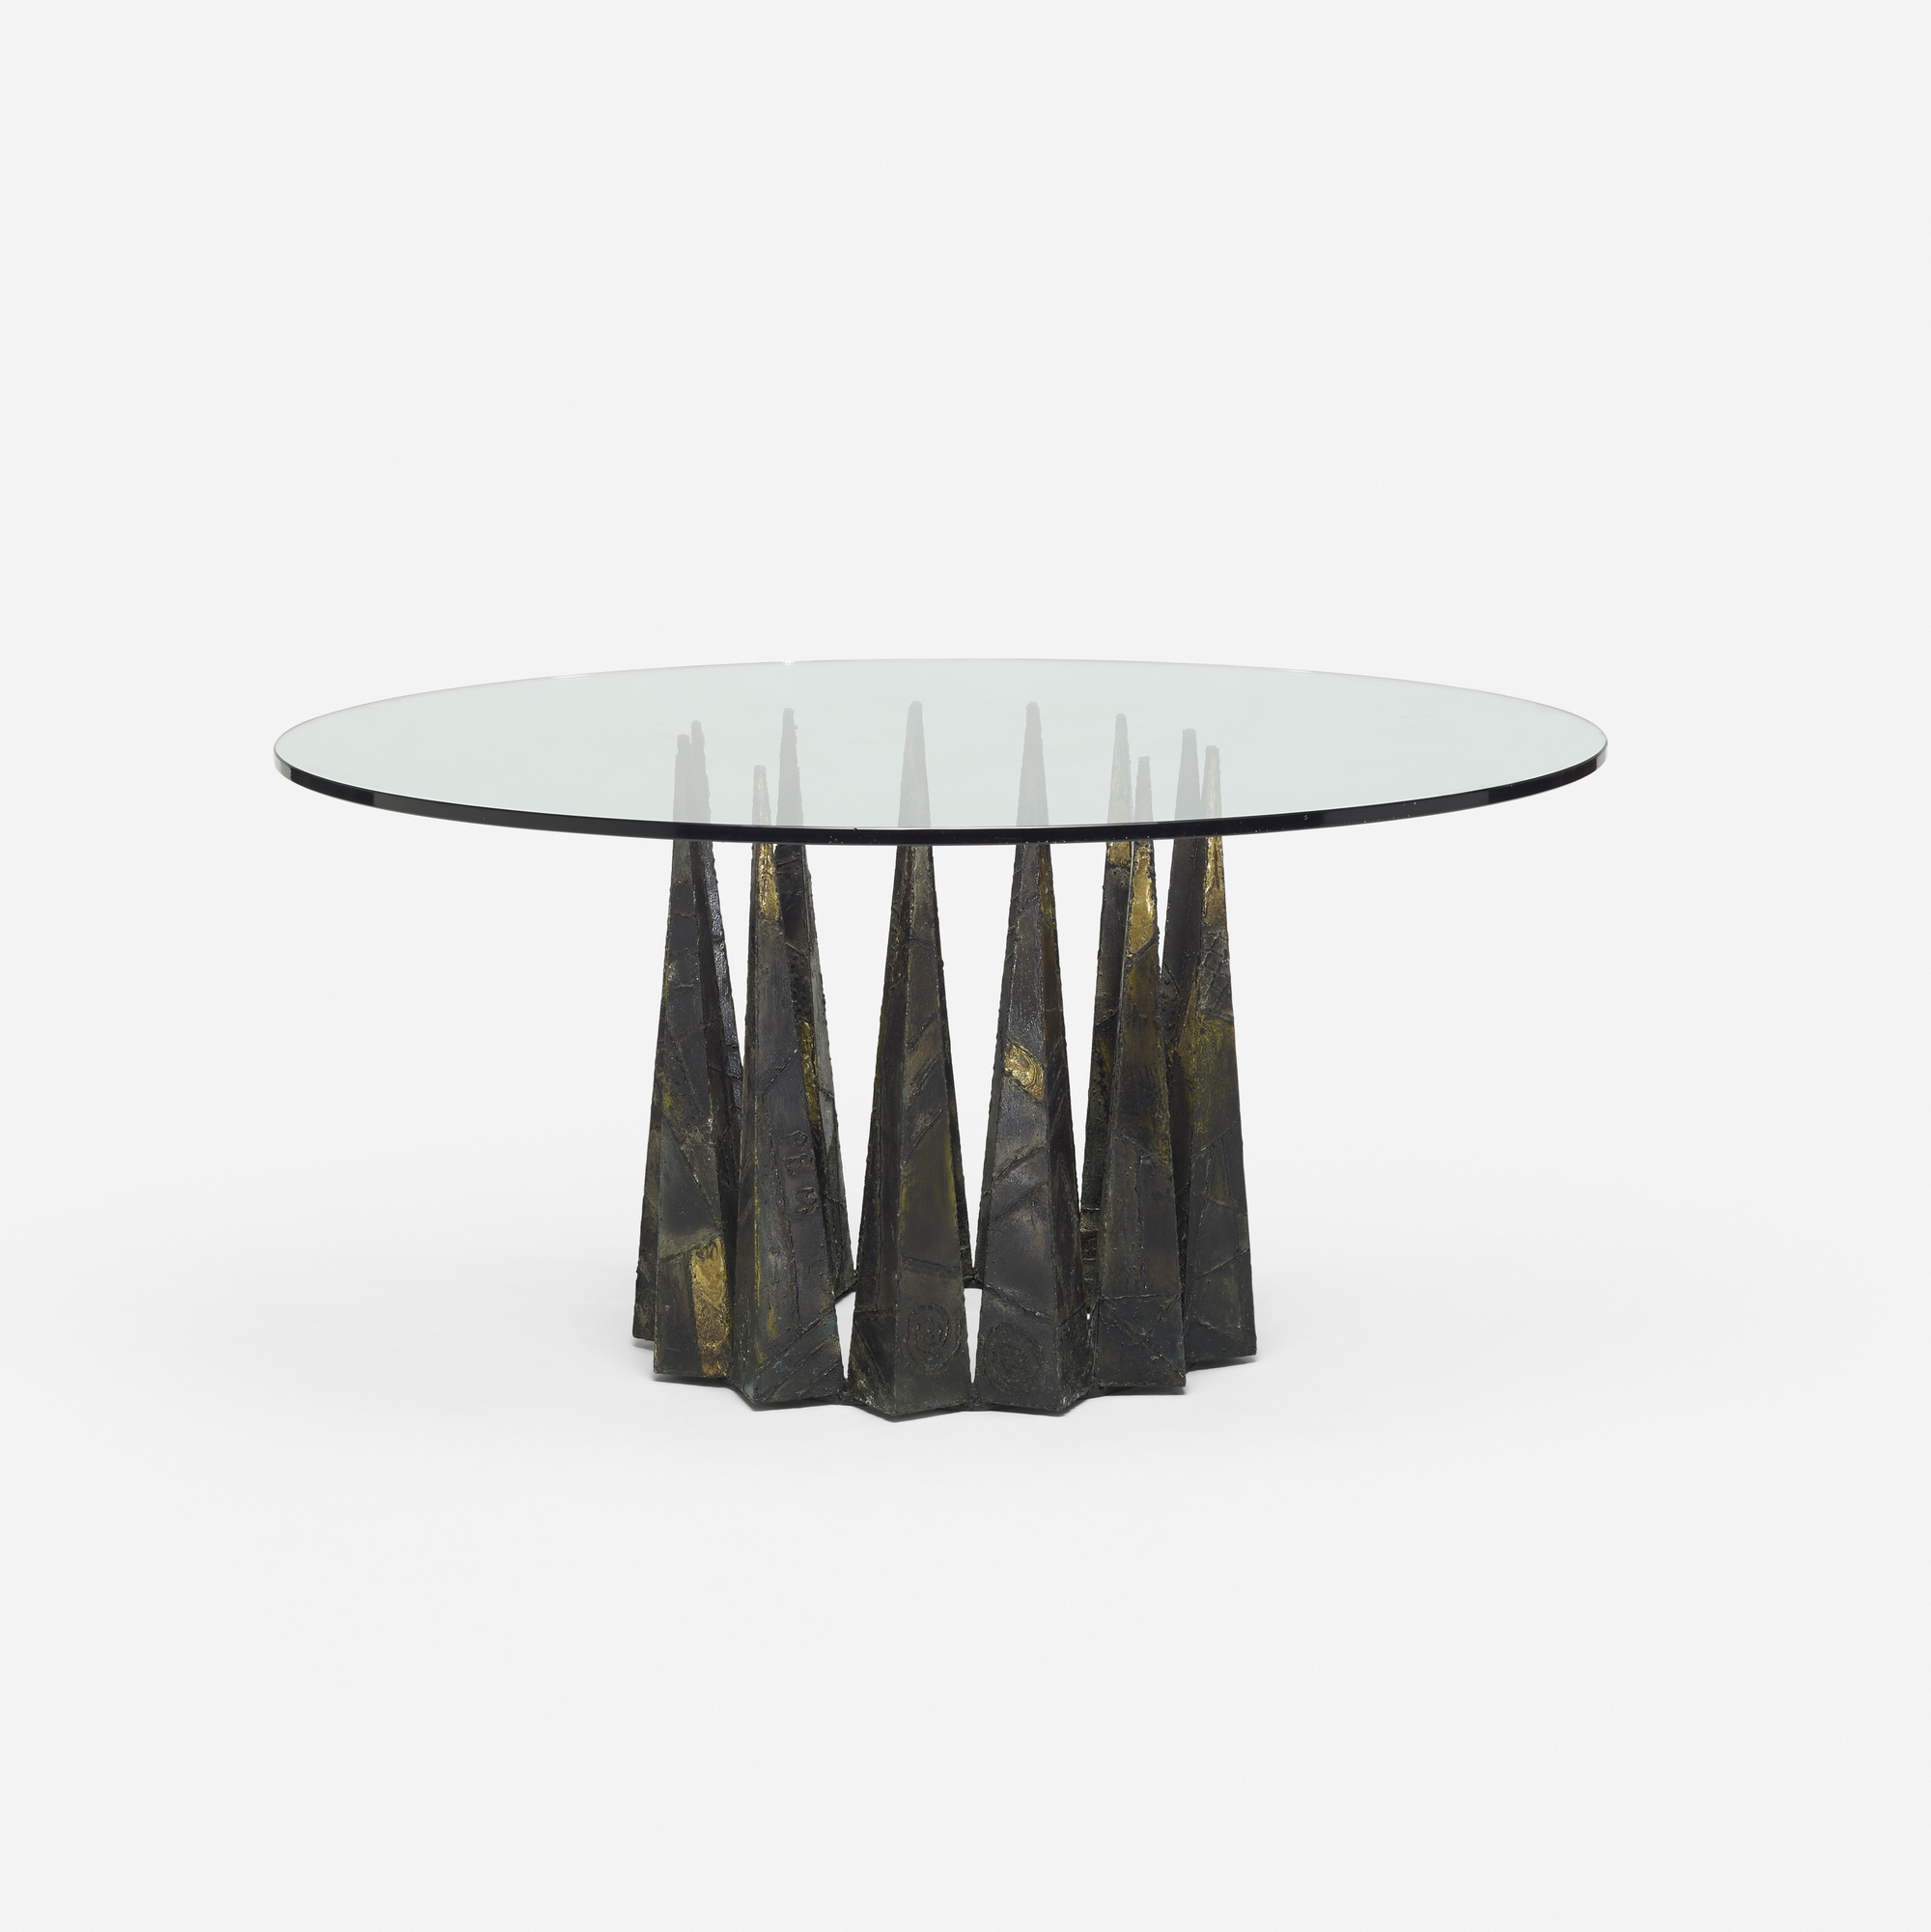 168: Paul Evans / dining table (1 of 2)